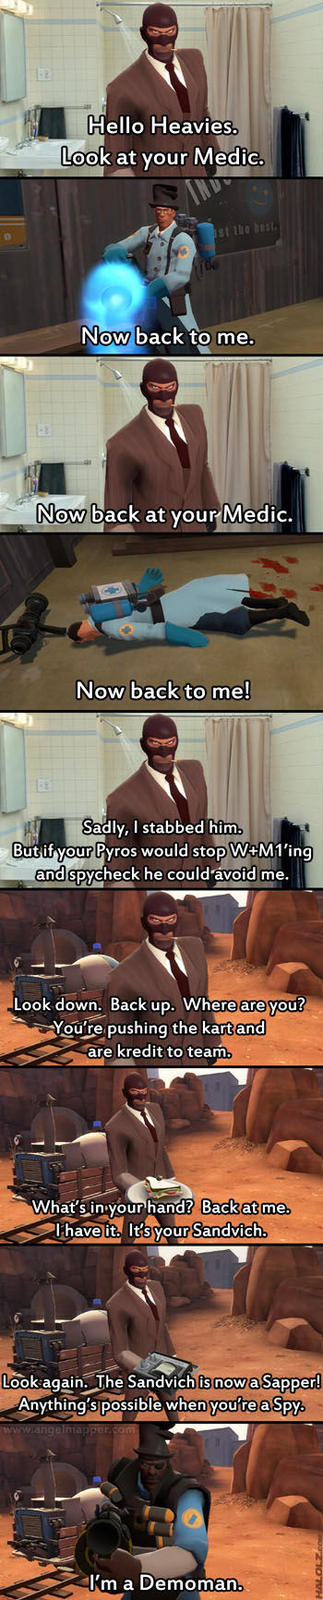 halolz-dot-com-teamfortress2-spy-tf2spice.jpg